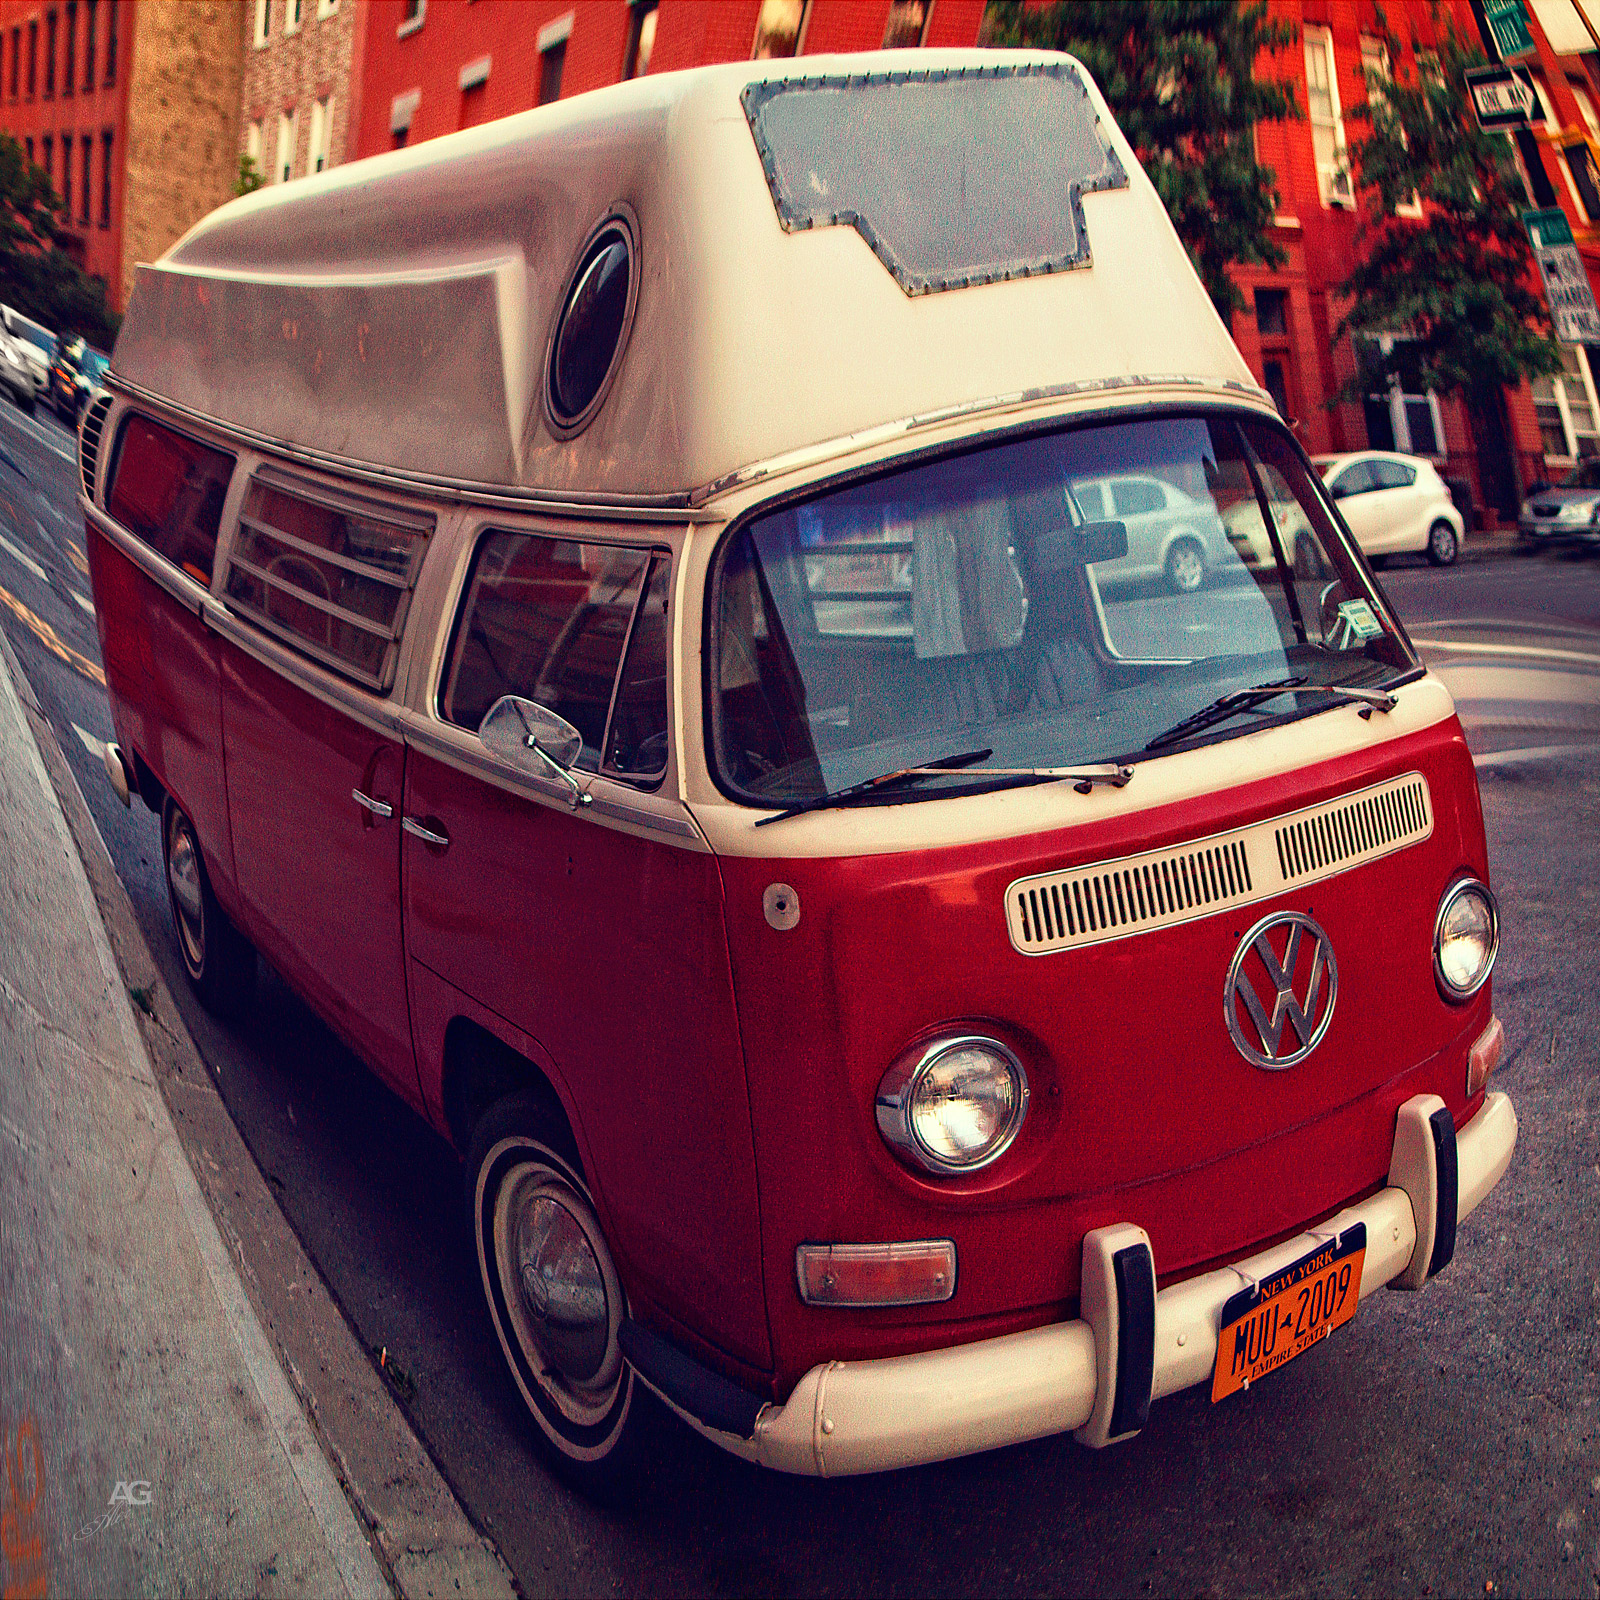 VintageHippieWolkswagenRedBusGreenpoint_warped_1600